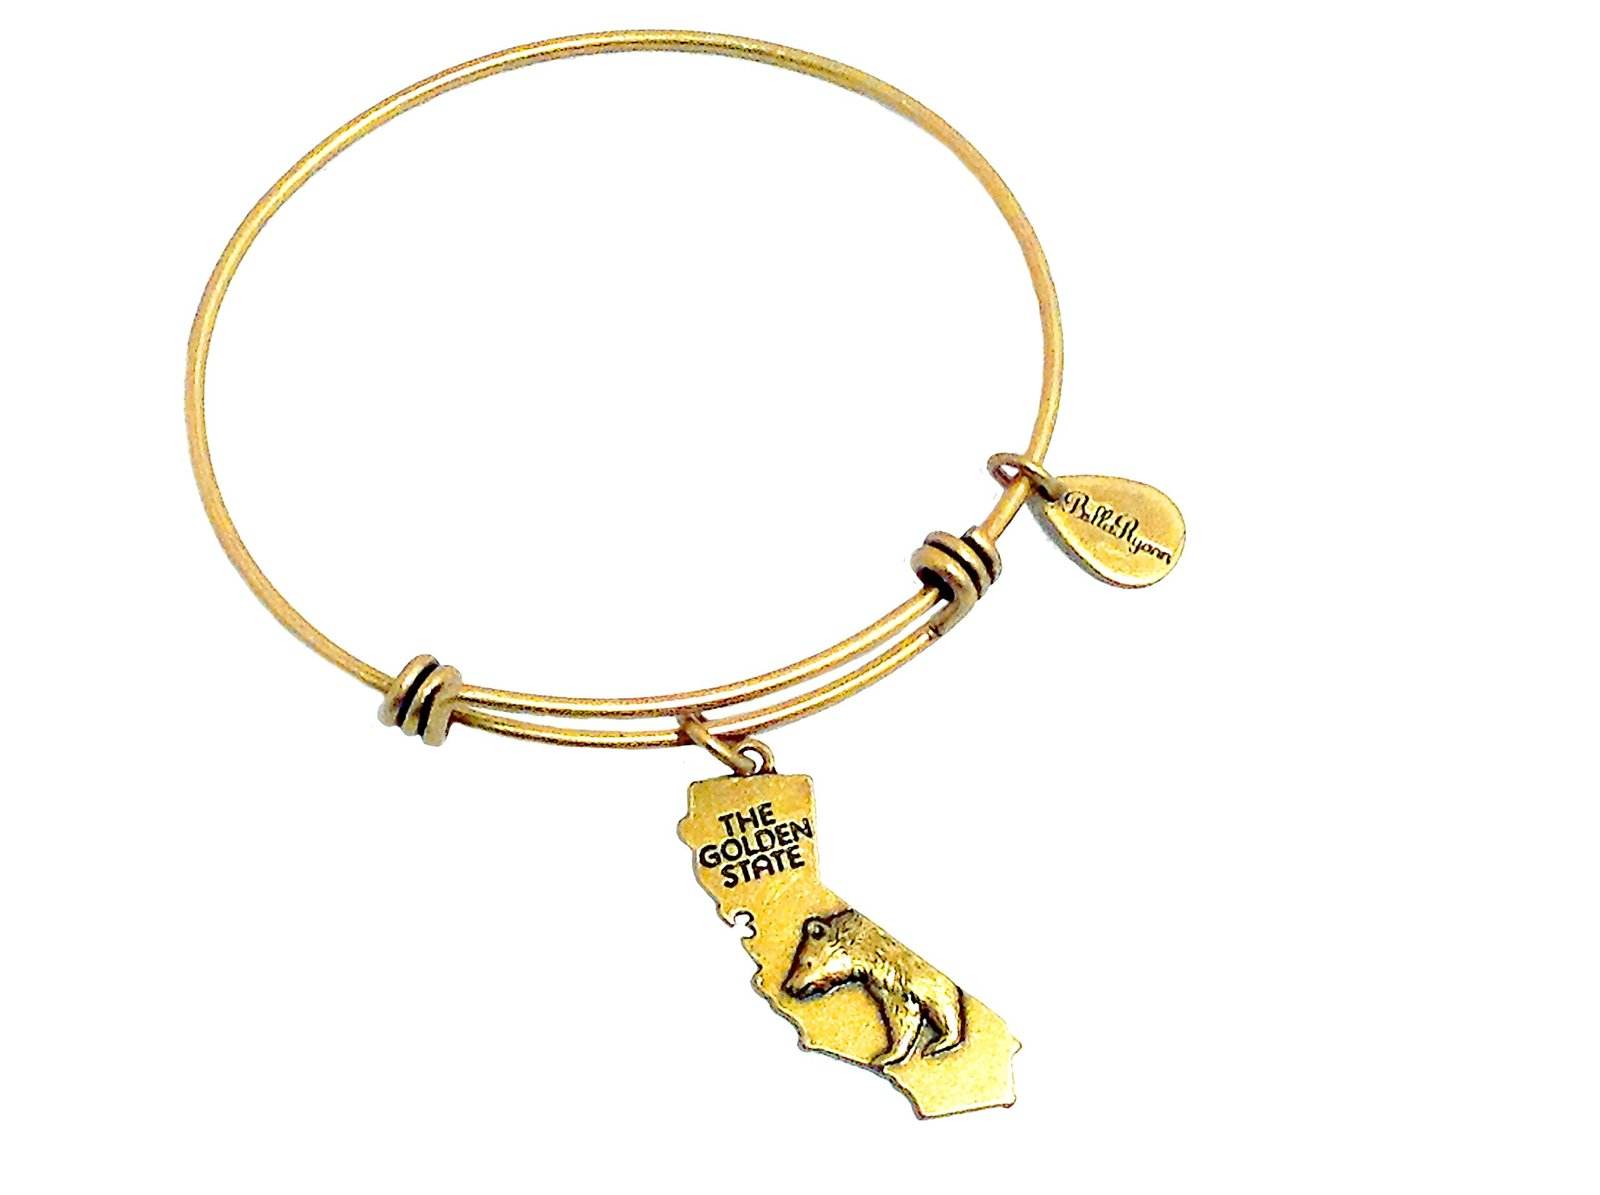 State of California Charm Bangle Bracelet (gold-plated-base)